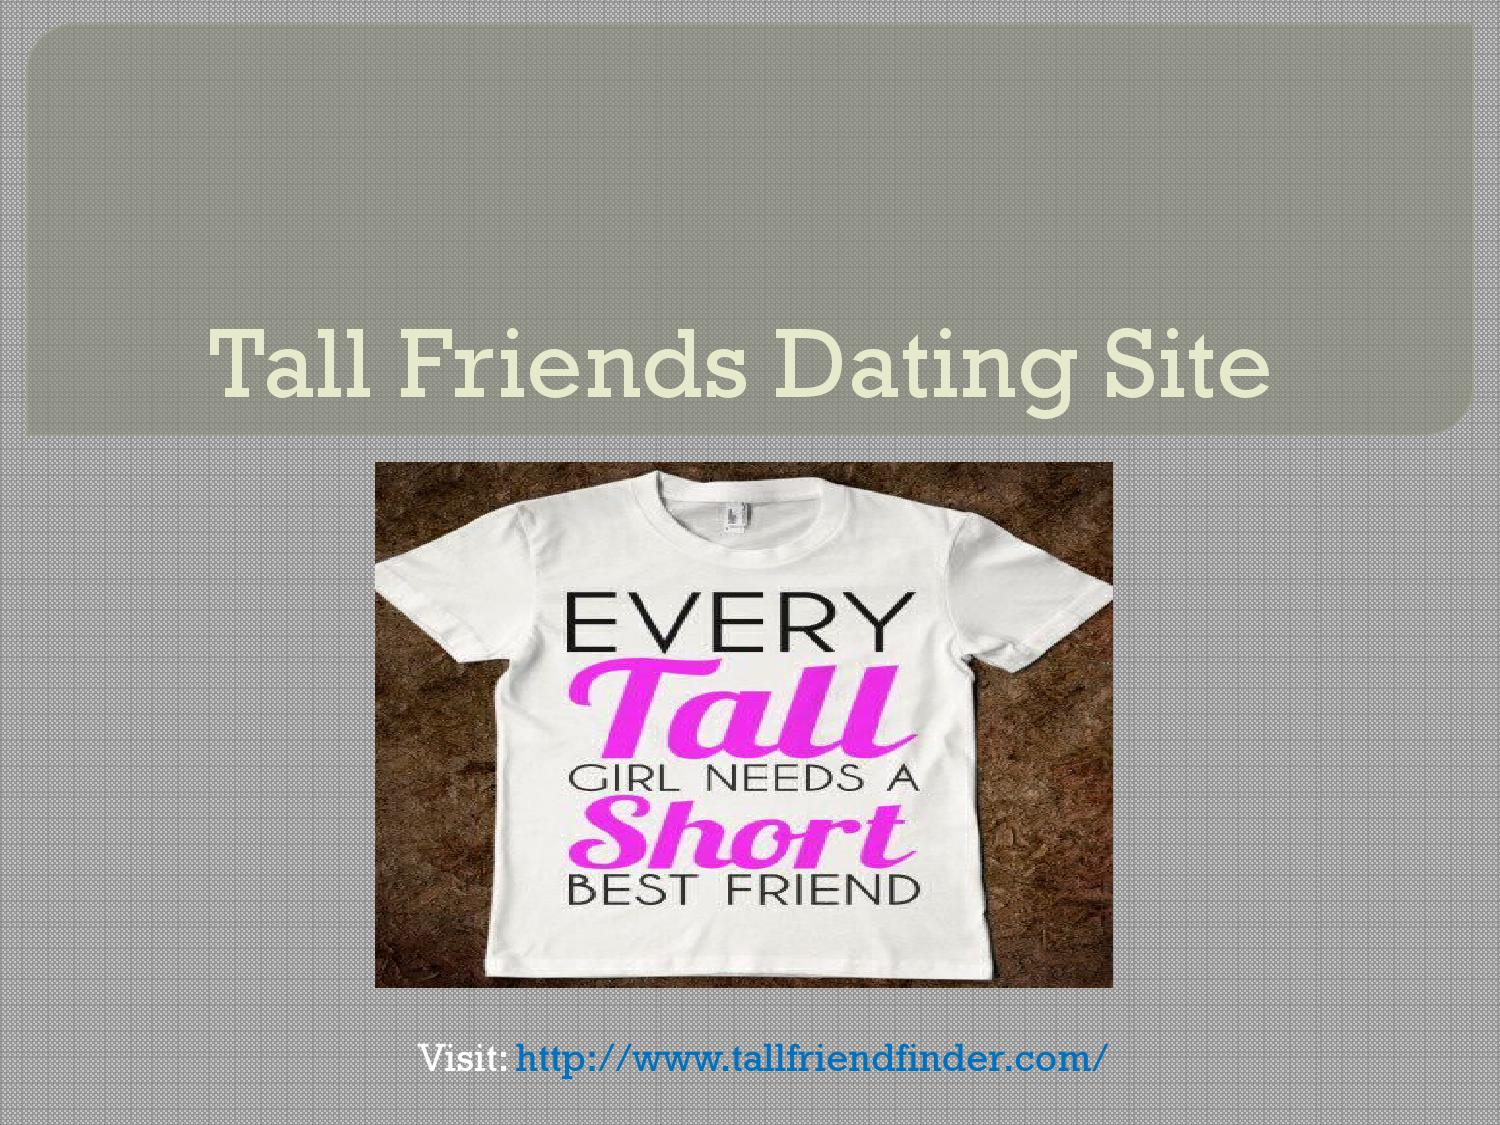 Friend dating site